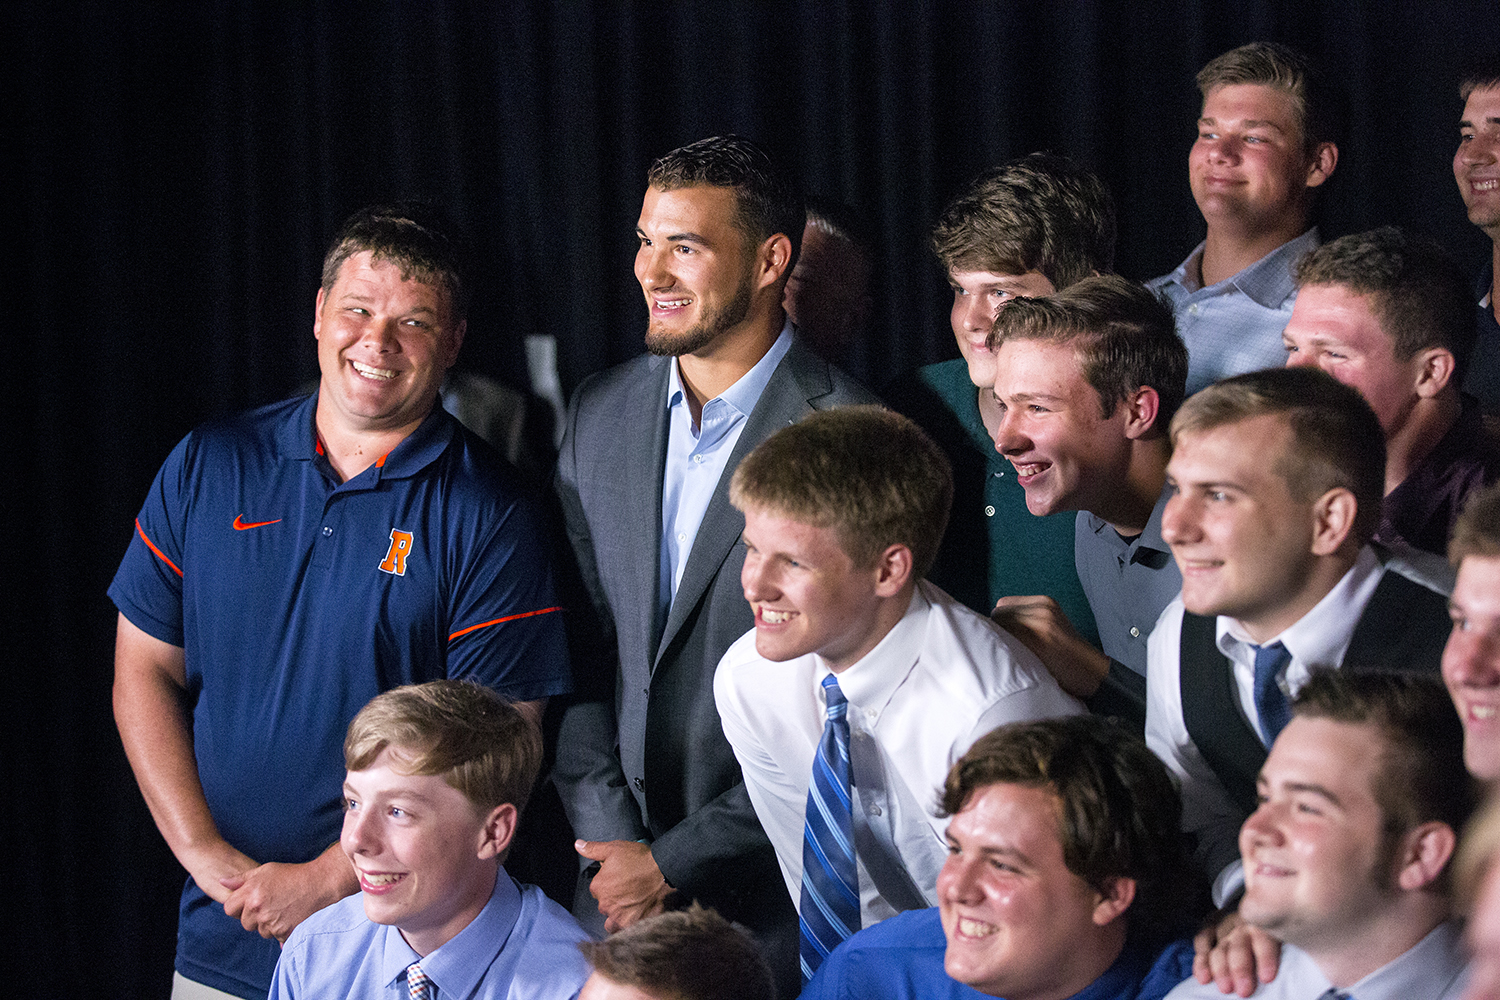 The Chicago Bears quarterback Mitch Trubrisky, center, jumped in with the Rochester High School football team for a group picture after the Rockets were named for a second year as The State Journal-Register's 2018 Best of Capital Region Preps Team of the Year during an awards ceremony and banquet Friday,June 22, 2018 at the Bank of Springfield Center in Springfield, Ill. Rochester Head Coach Derek Leonard is at left.  [Rich Saal/The State Journal-Register]